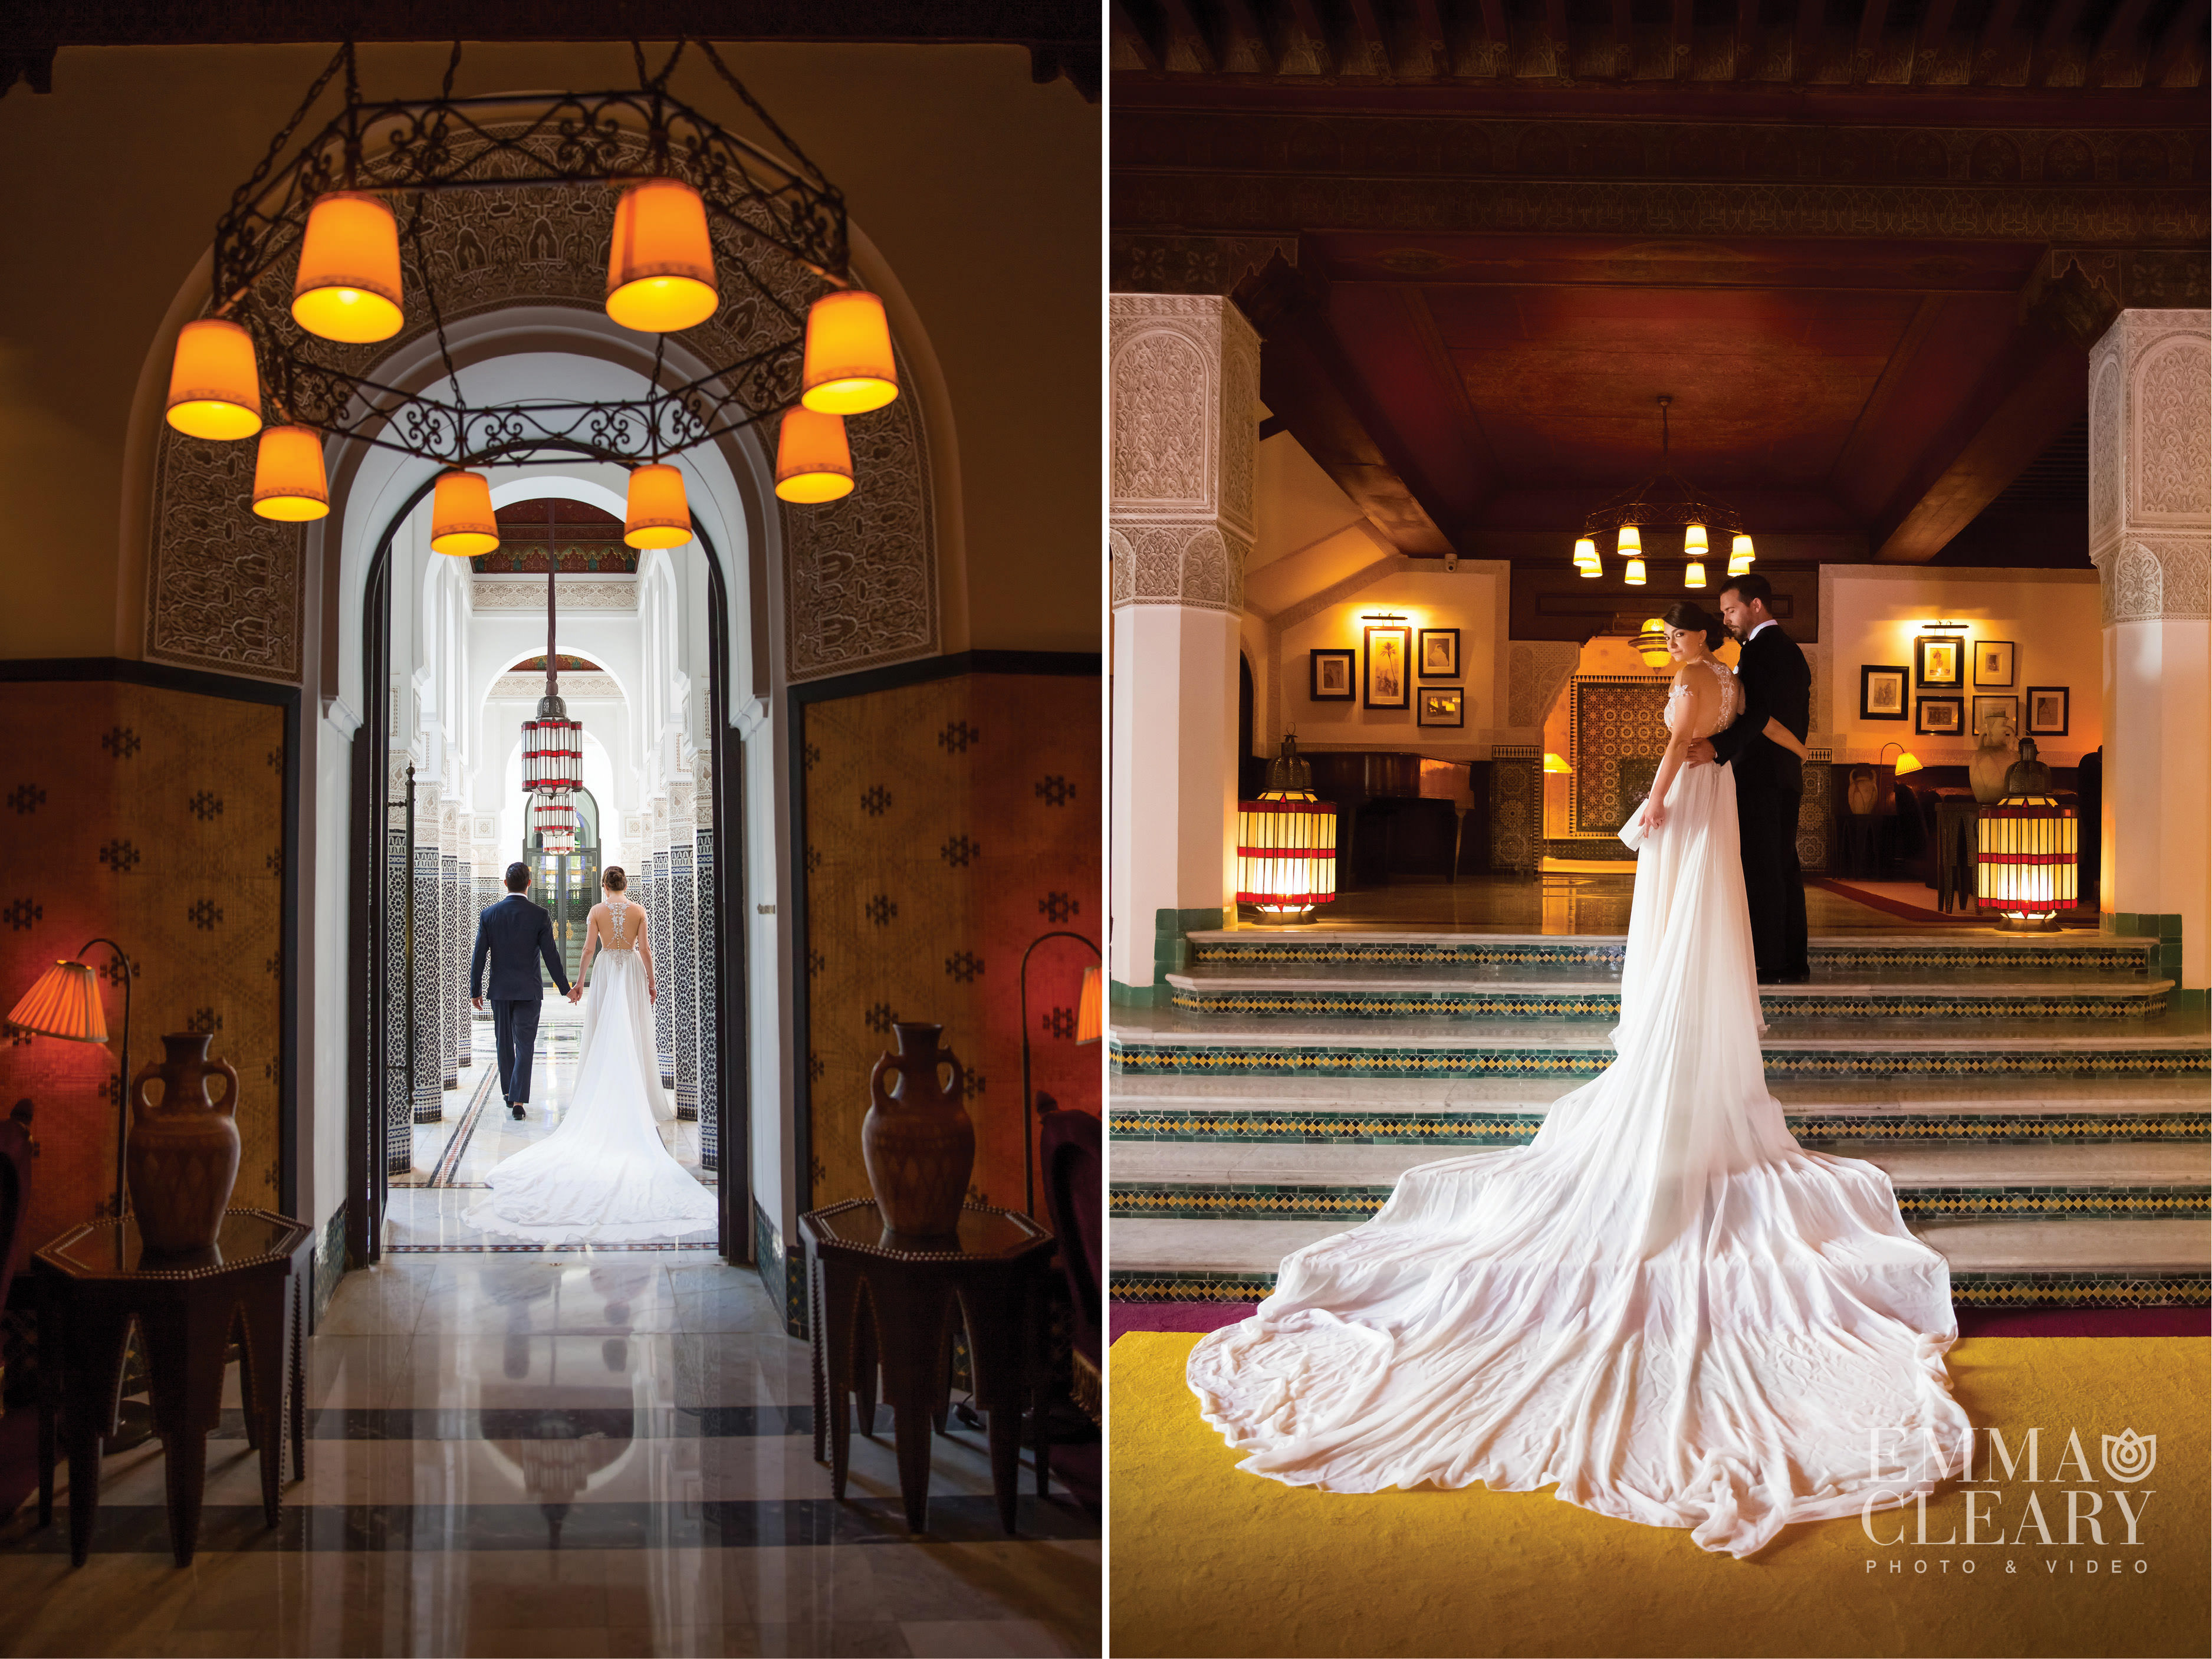 Emma_cleary_photography Destination Wedding Morrocco11